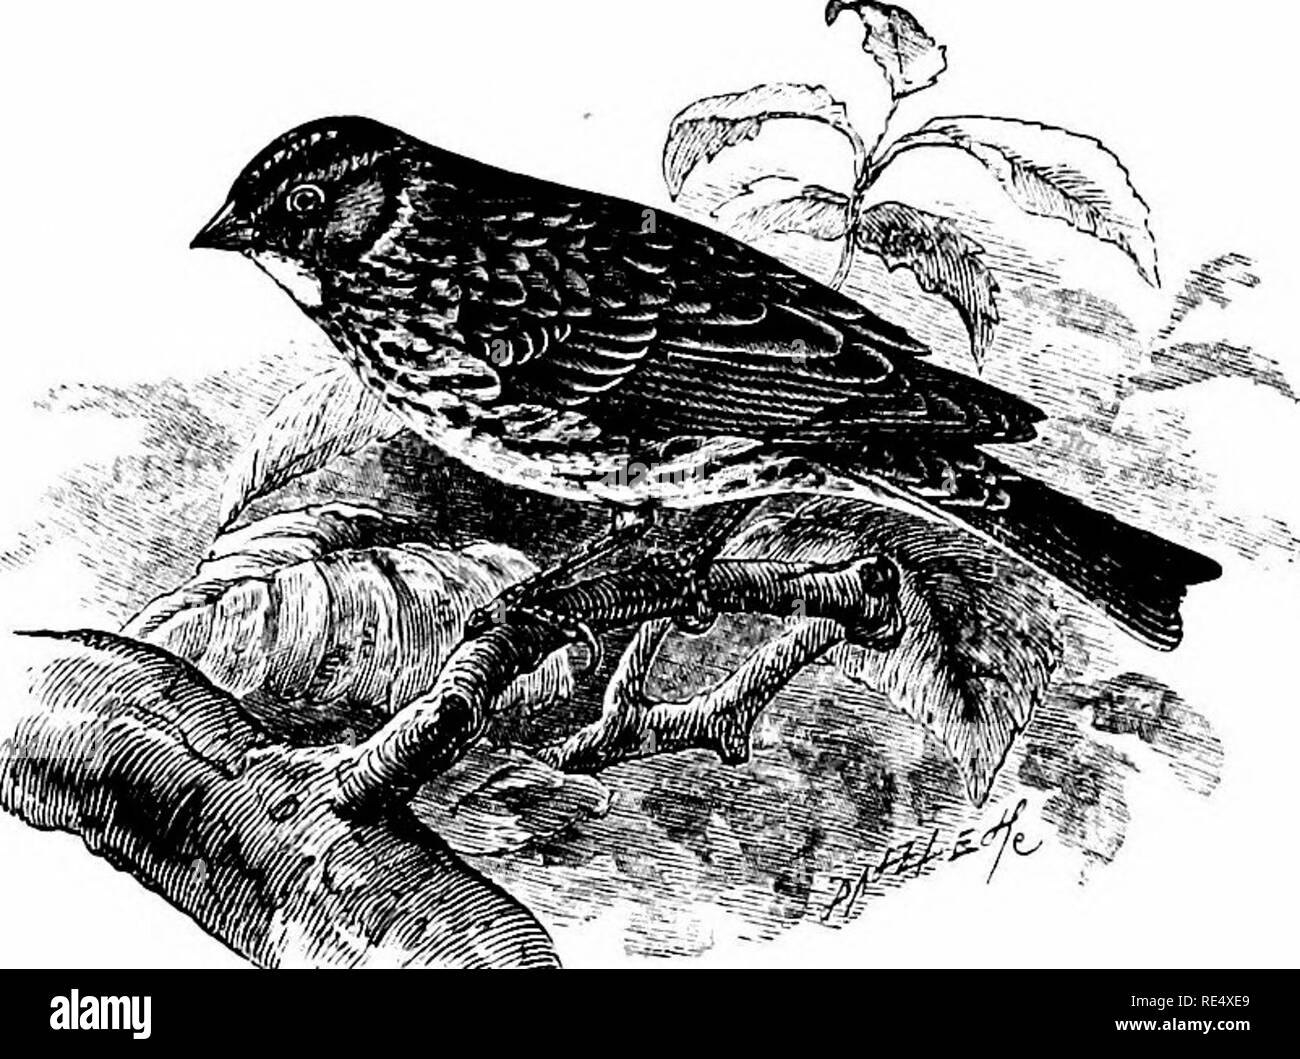 . An illustrated manual of British birds. Birds. EMBERIZIN^. 219. THE LITTLE BUNTING. Emberiza PUsfLLA, Pallas. The only British example yet recorded of this smallest of European Buntings was brought, on November 2nd 1864, to the late Mr. Swaysland of Brighton, and was identified alive by the late Mr. G, D. Rowley. It was subsequently exhibited before the Zoological Society, and now forms part of Mr. T. J. Monk's fine collection of Sussex birds. Other wanderers may have occurred and been overlooked. The Little Bunting has been obtained near Lund, in Sweden, on the spring migration of 1815 ; al - Stock Image